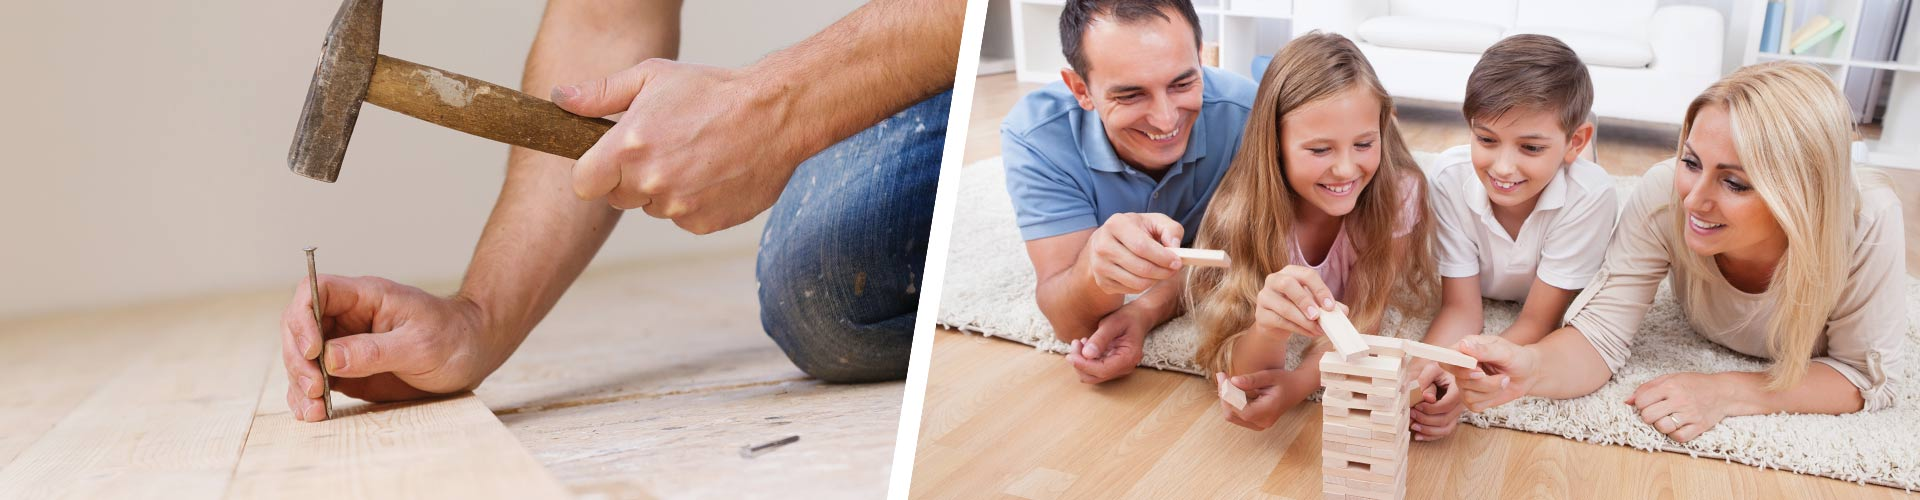 Cincinnati Hardwood, Carpet and Flooring Expert Installers - Banner